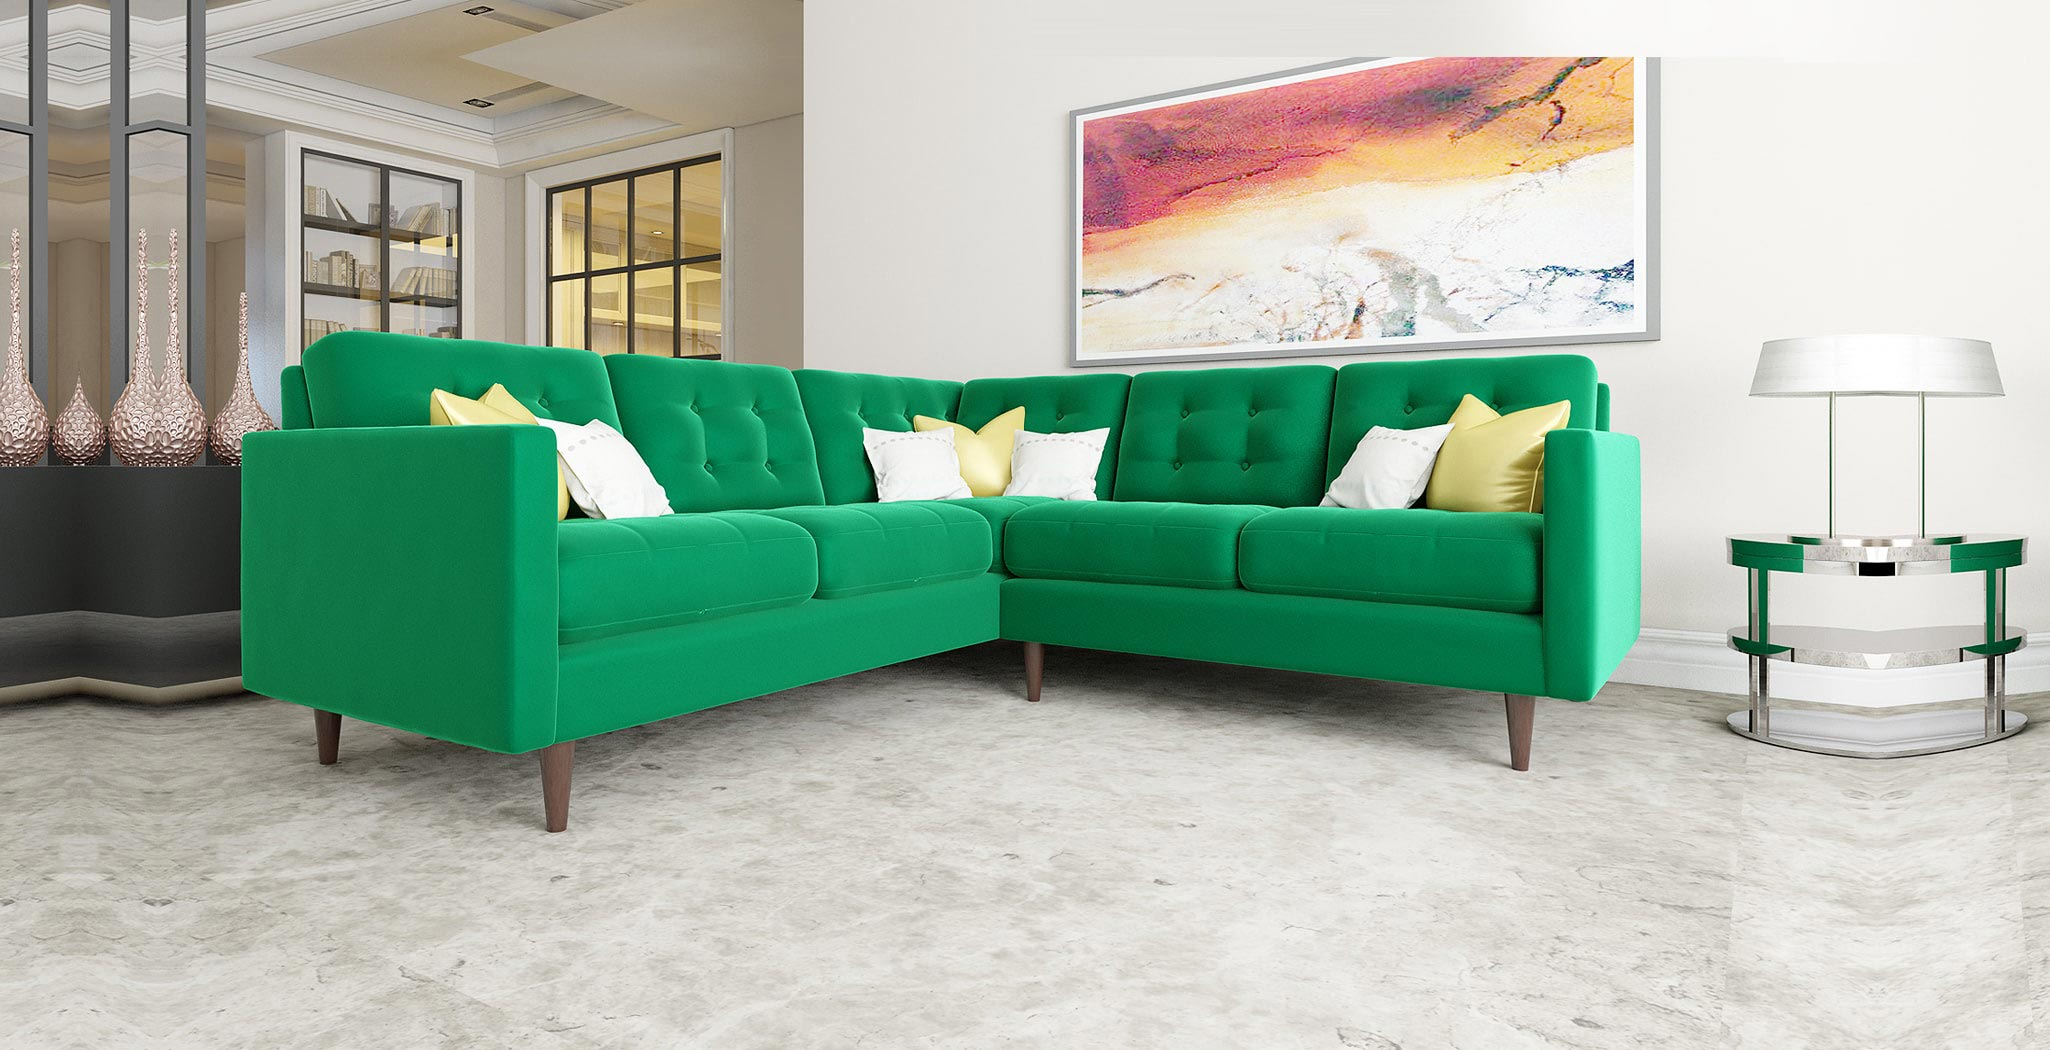 oslo sectional furniture gallery 5